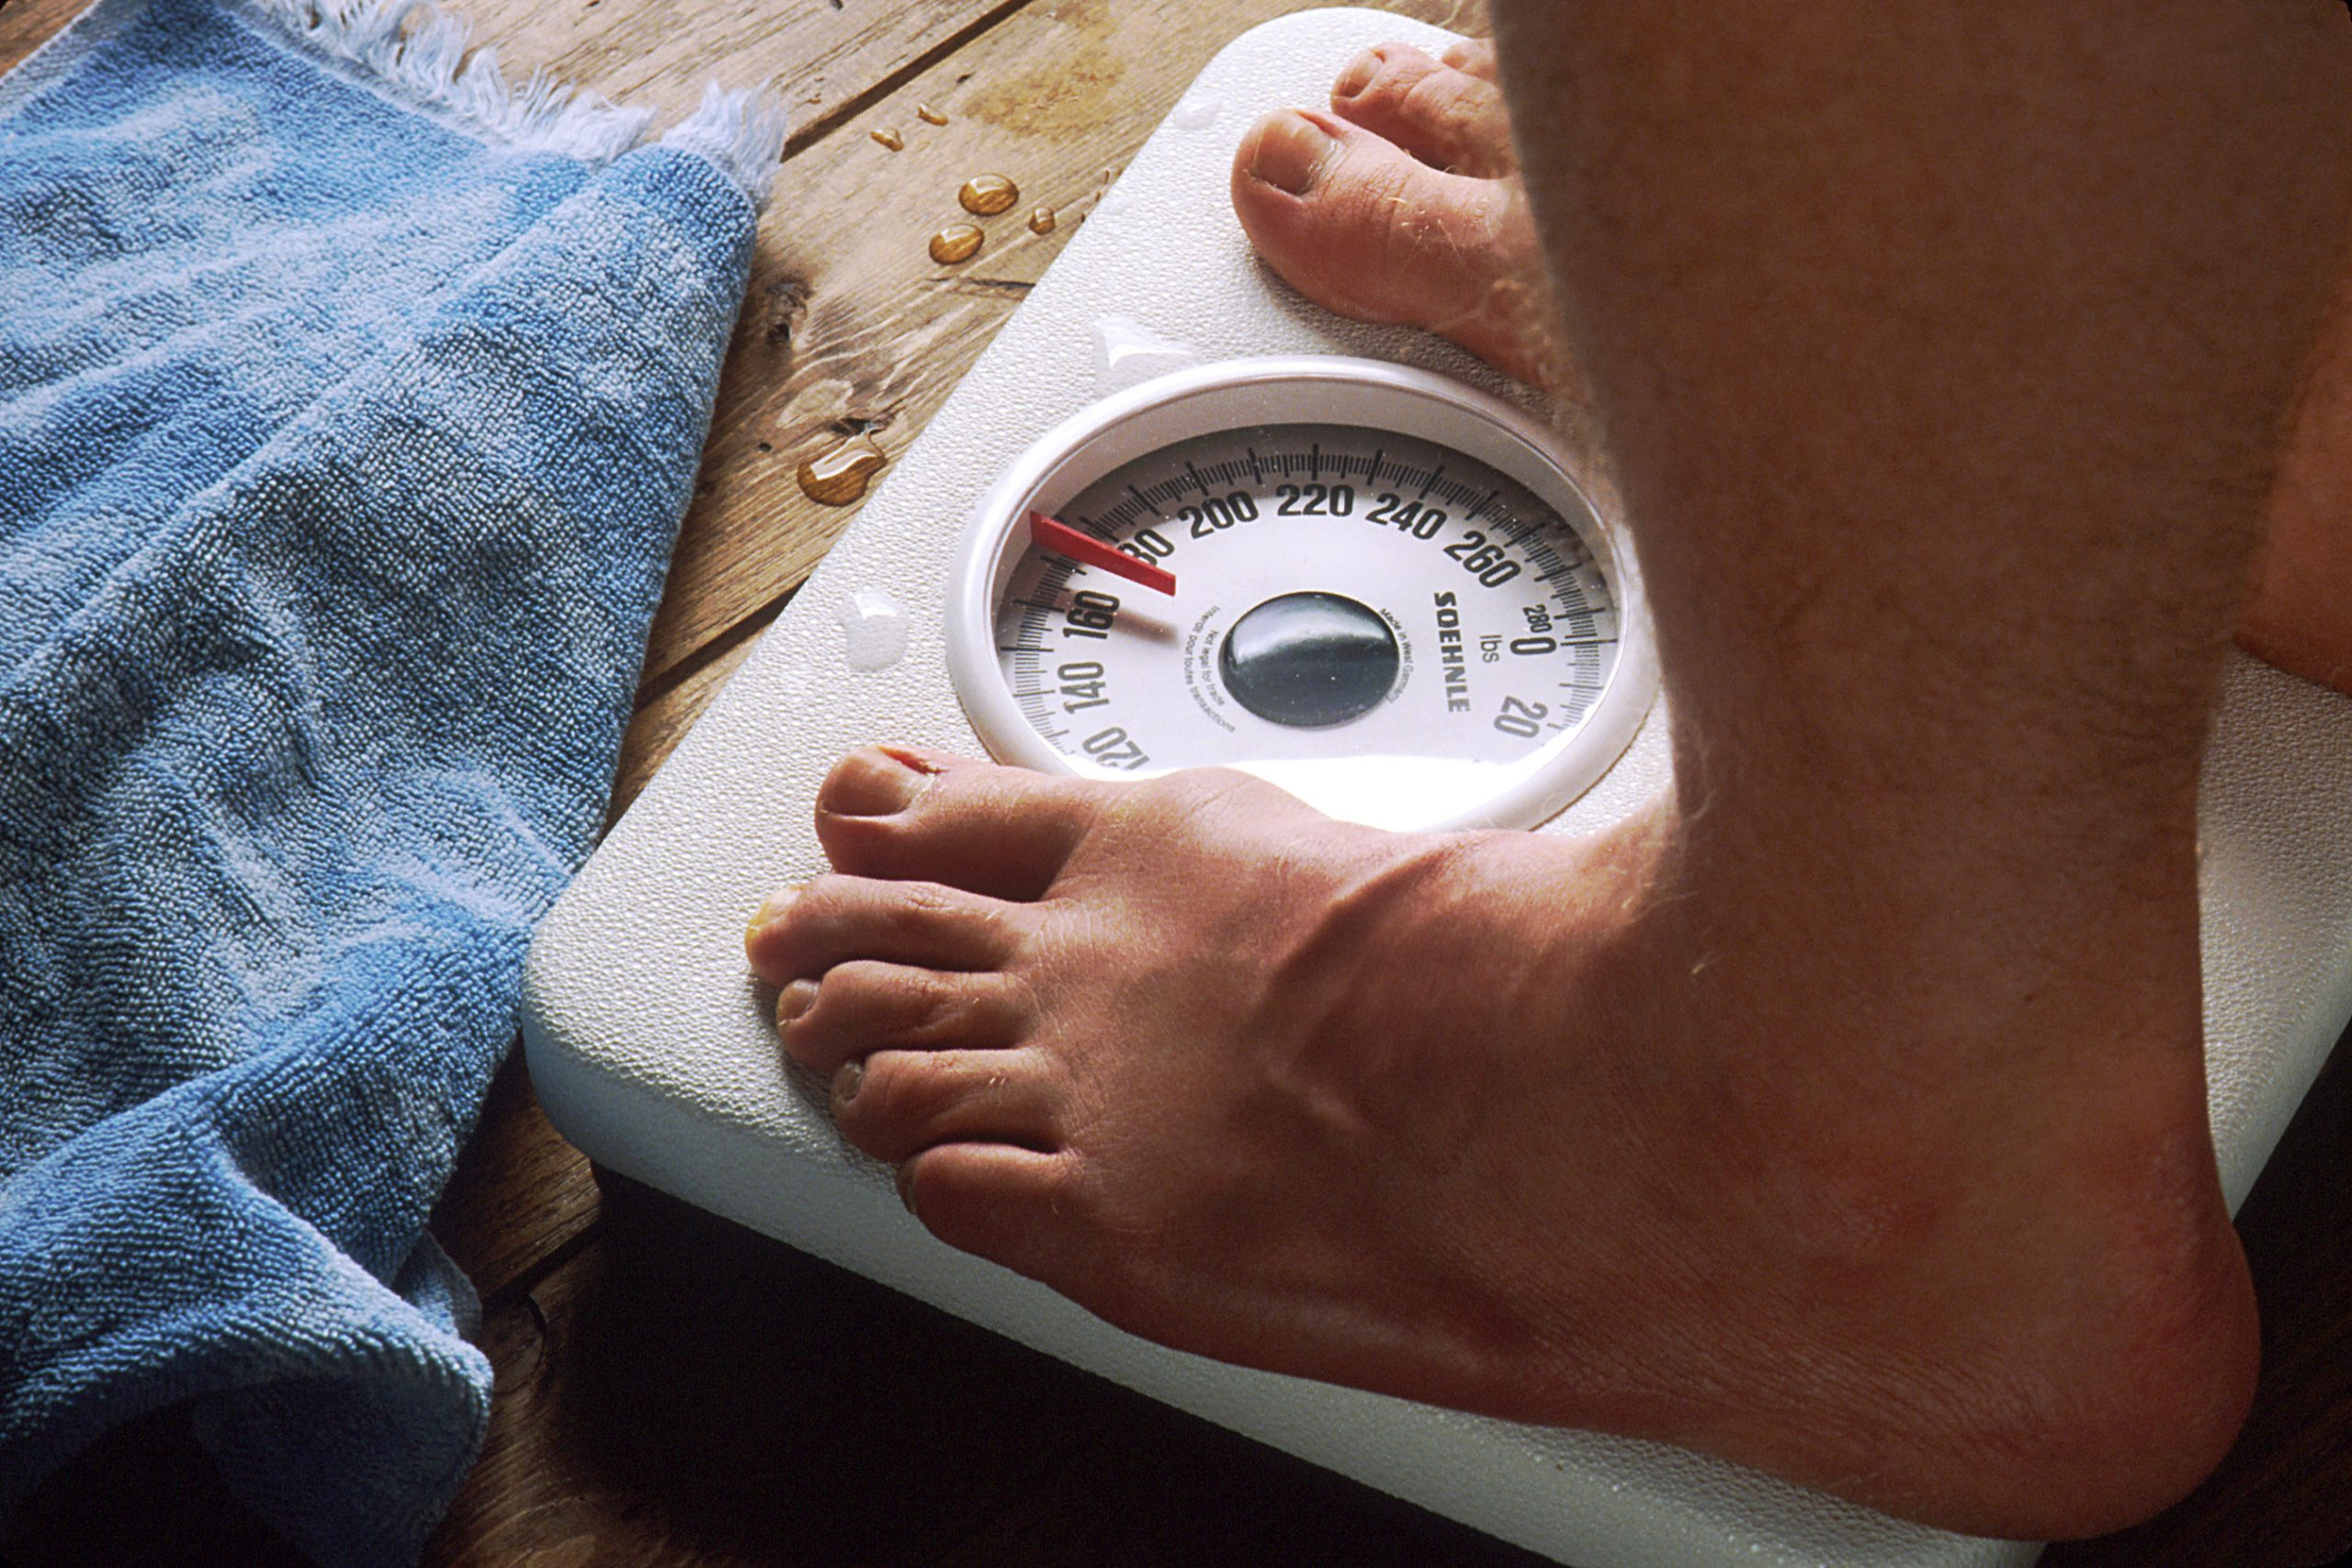 man's feet standing on a bathroom scale with a blue towel on the floor, weight, bmi, health